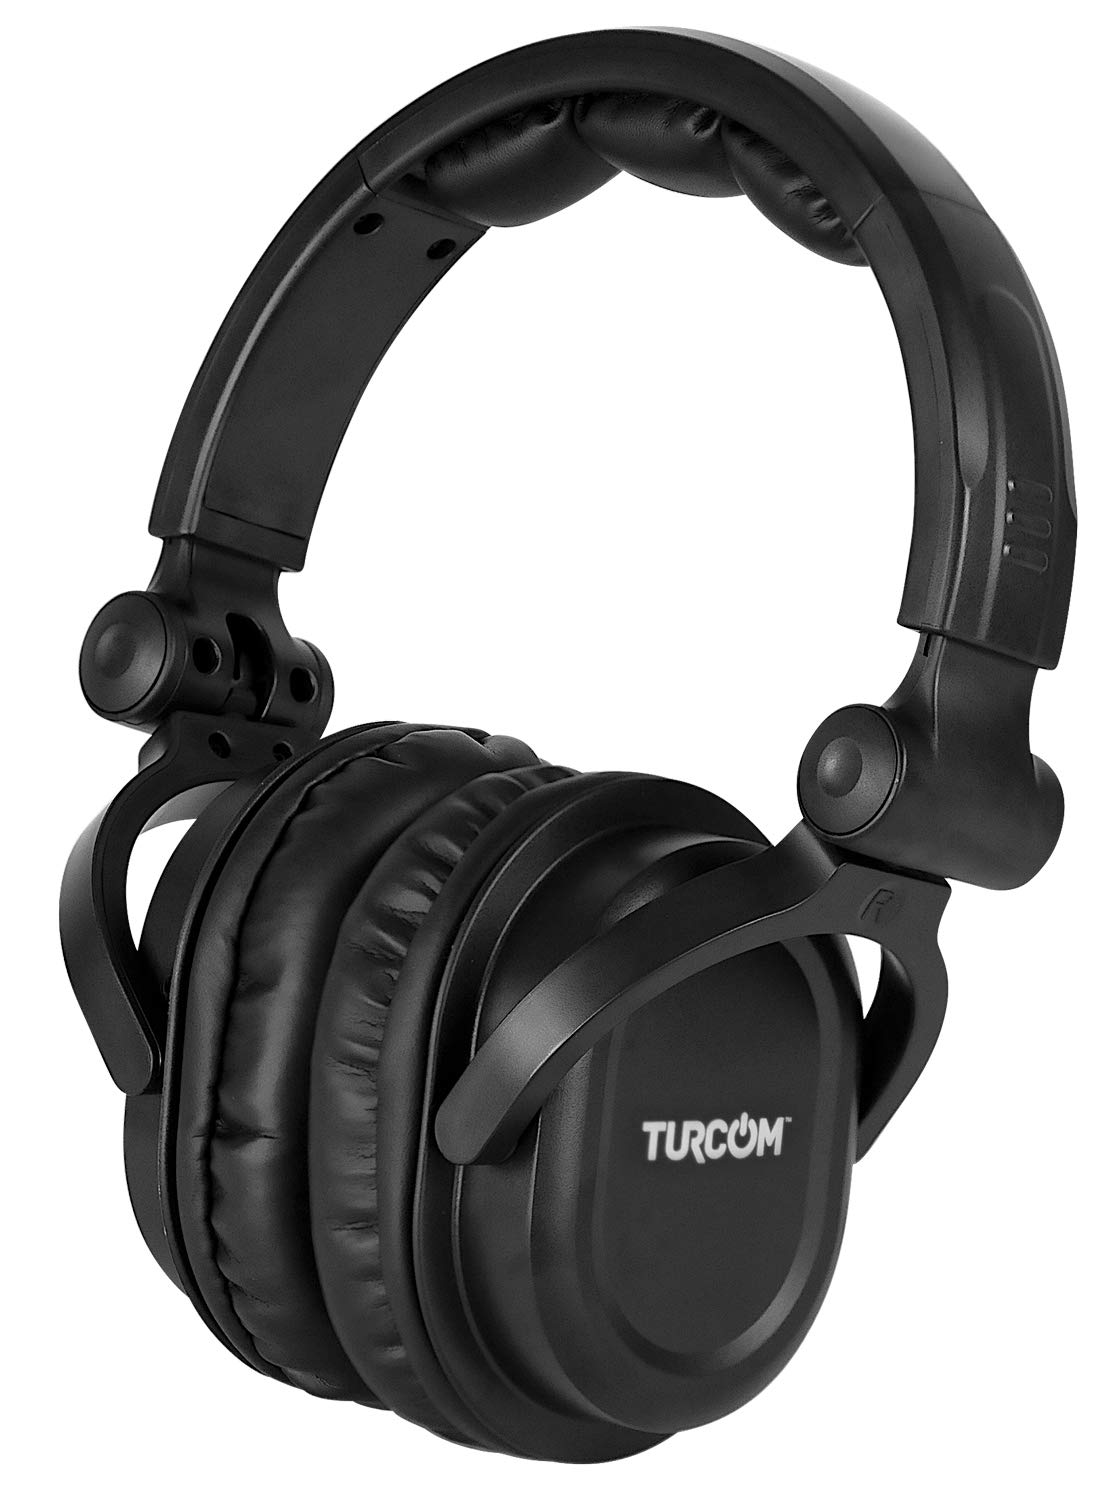 Auriculares Turcom Over-Ear Con Cable Gaming DJ-Style Monitor Stereo Studio Sound 50 mm Drivers y 100 dB Liviano Ajustab